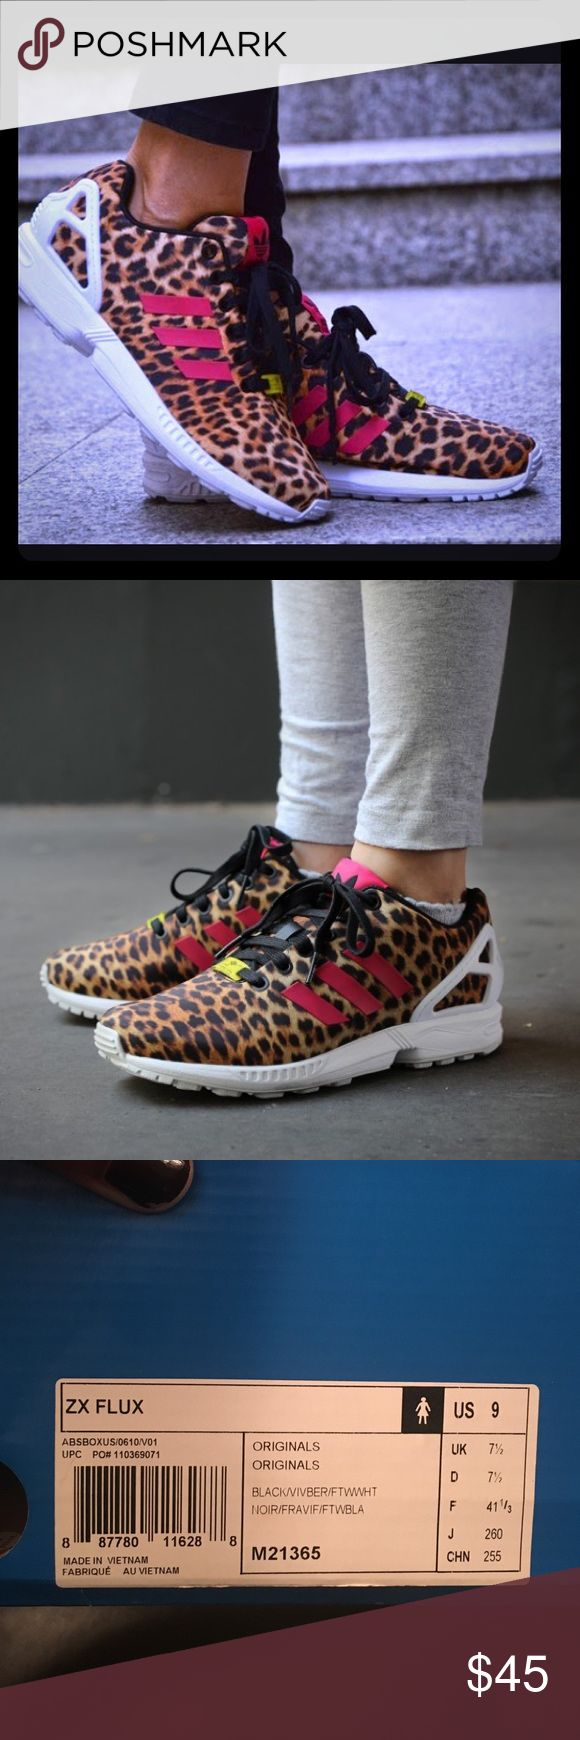 Adidas ZX FLUX Leopard Adidas ZX FLUX.. Great pair of comfy and stylish shoes. Adidas Shoes Athletic Shoes